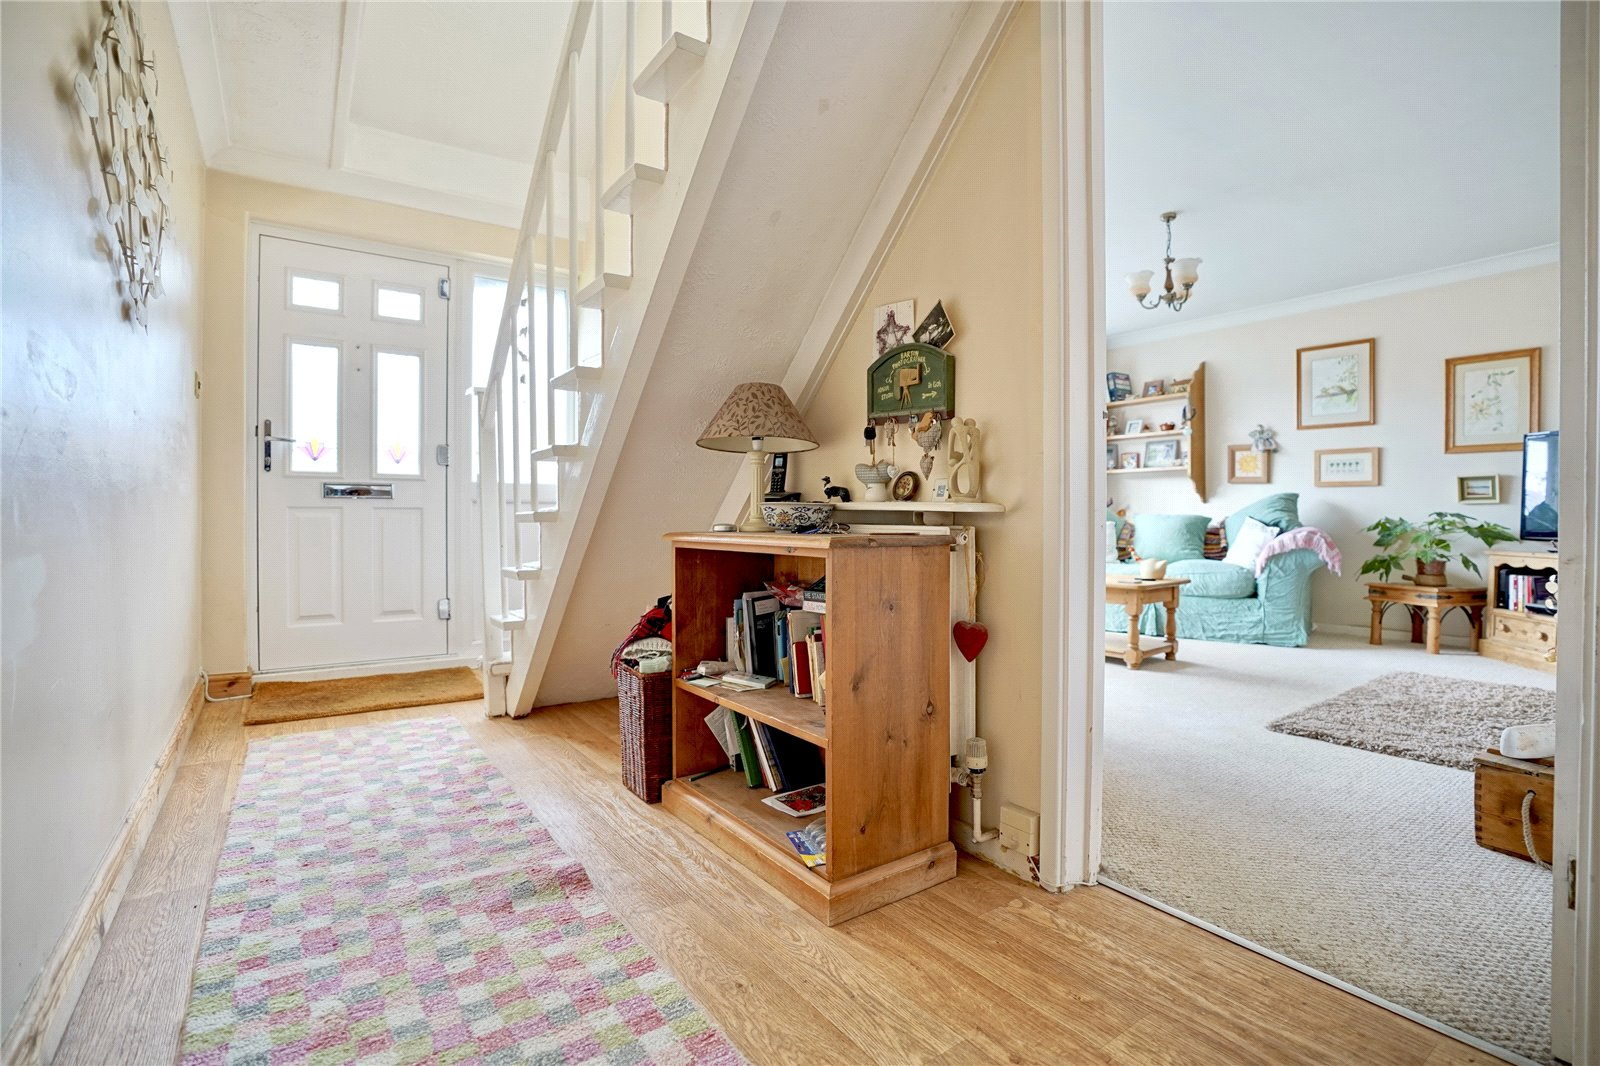 3 bed house for sale in Hemingford Grey, PE28 9BS  - Property Image 4